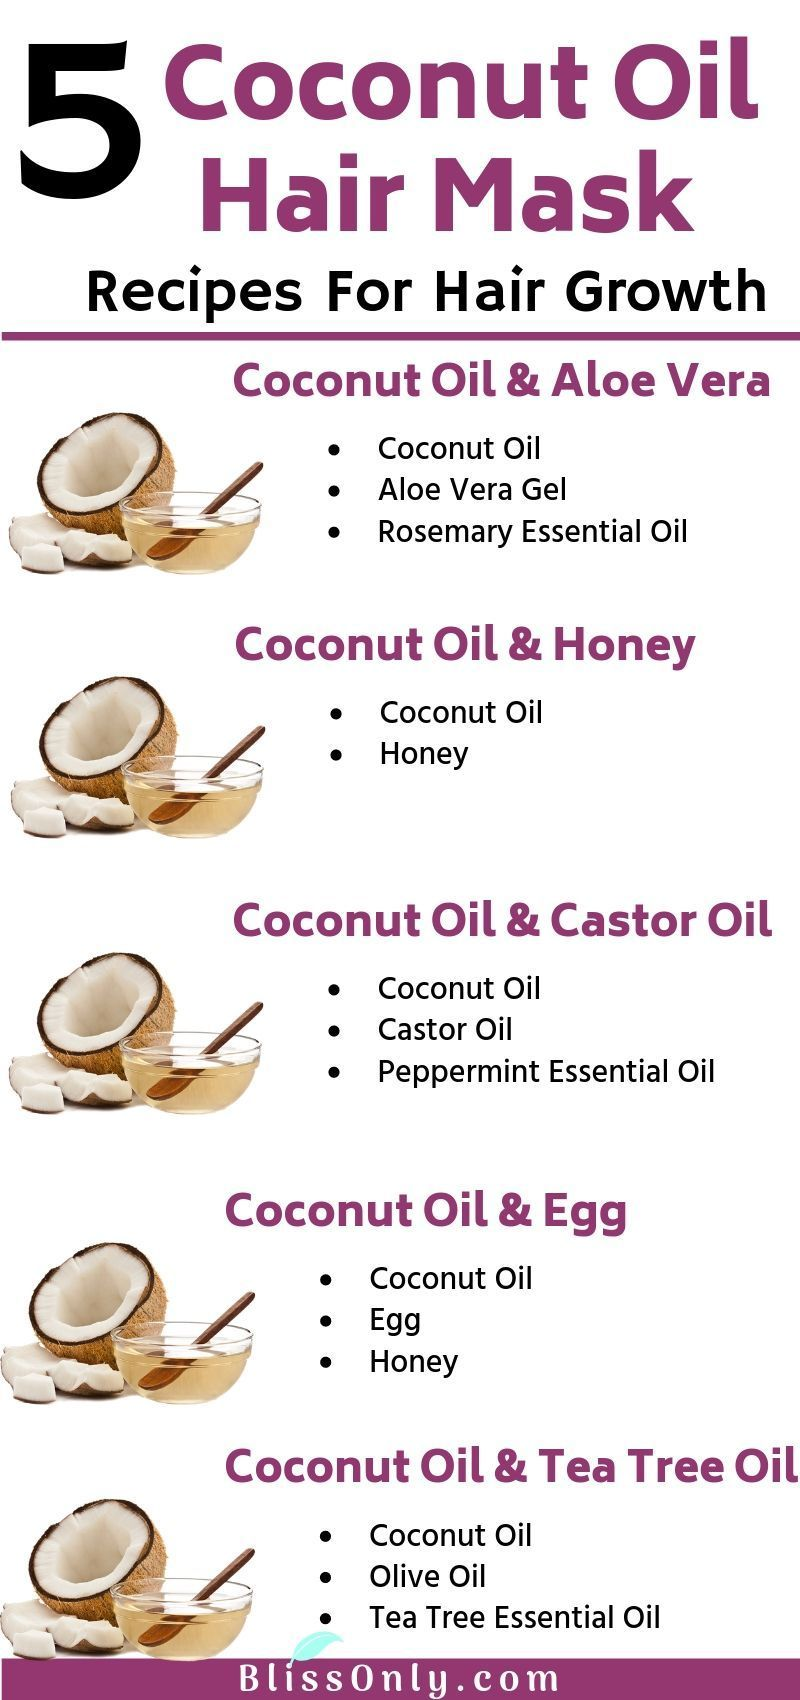 Photo of 5 Best Coconut Oil Hair Mask For Hair Growth – BlissOnly – #…